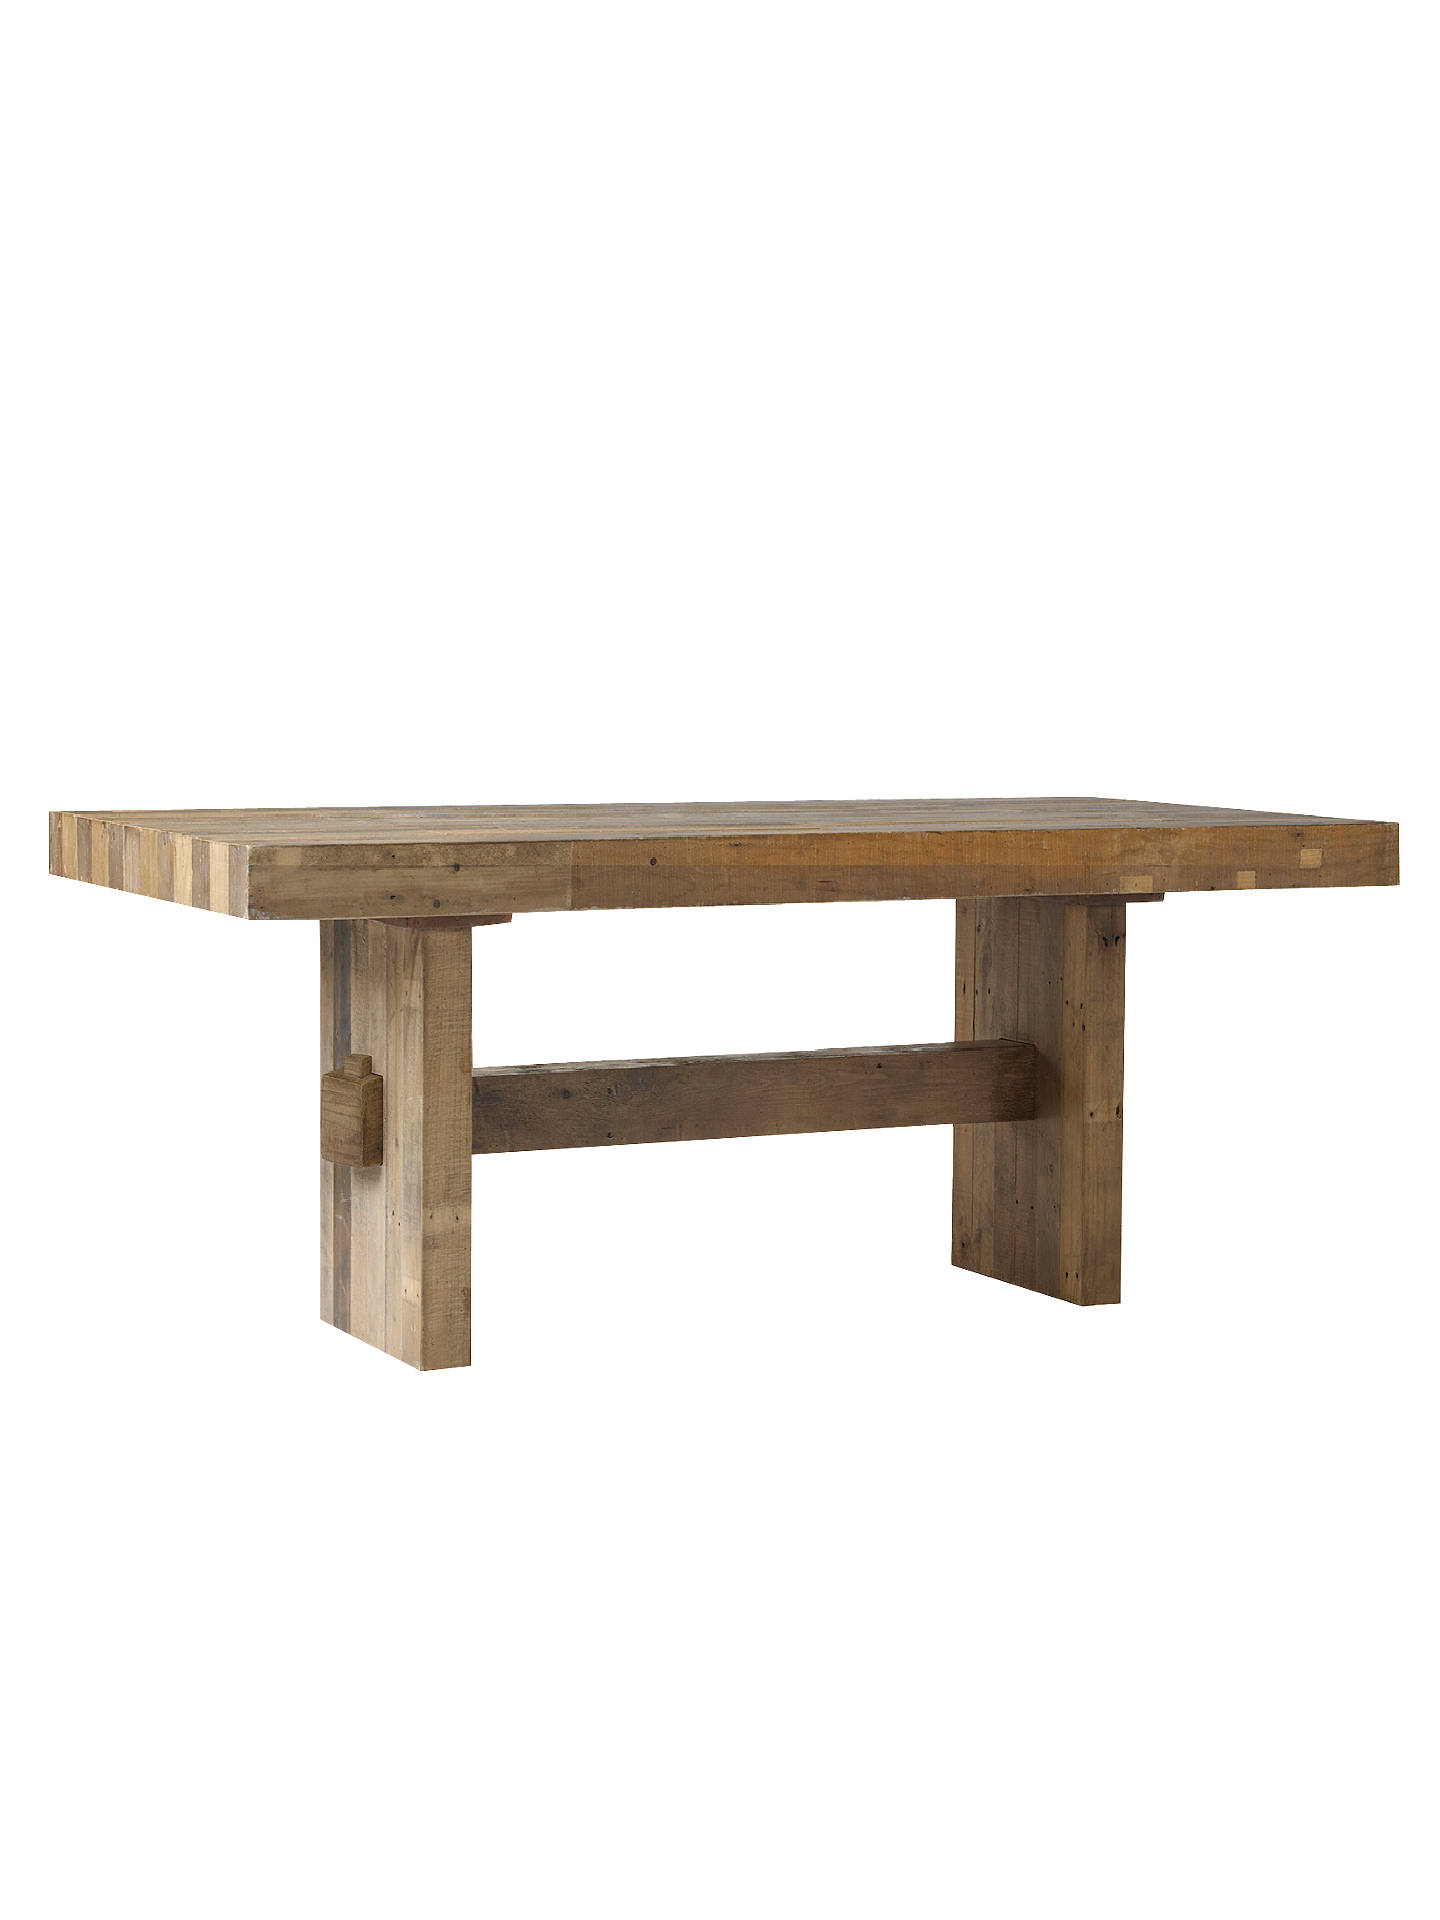 West Elm Emmerson 6 Seater Dining Table At John Lewis Partners